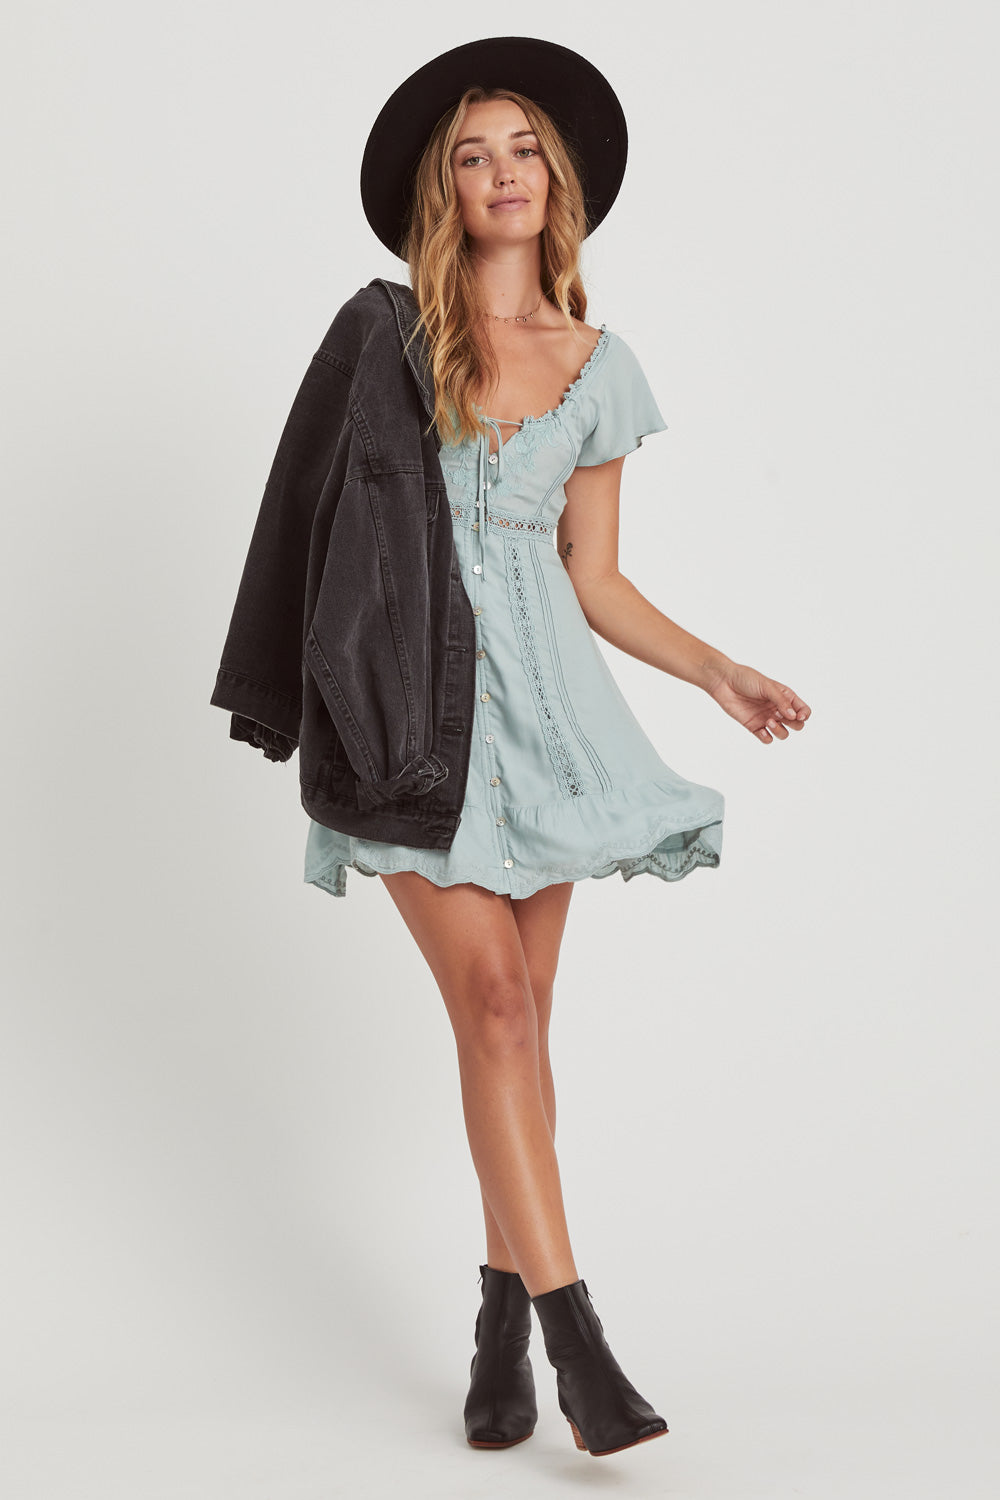 Dreamers Mini Dress in Misty Blue